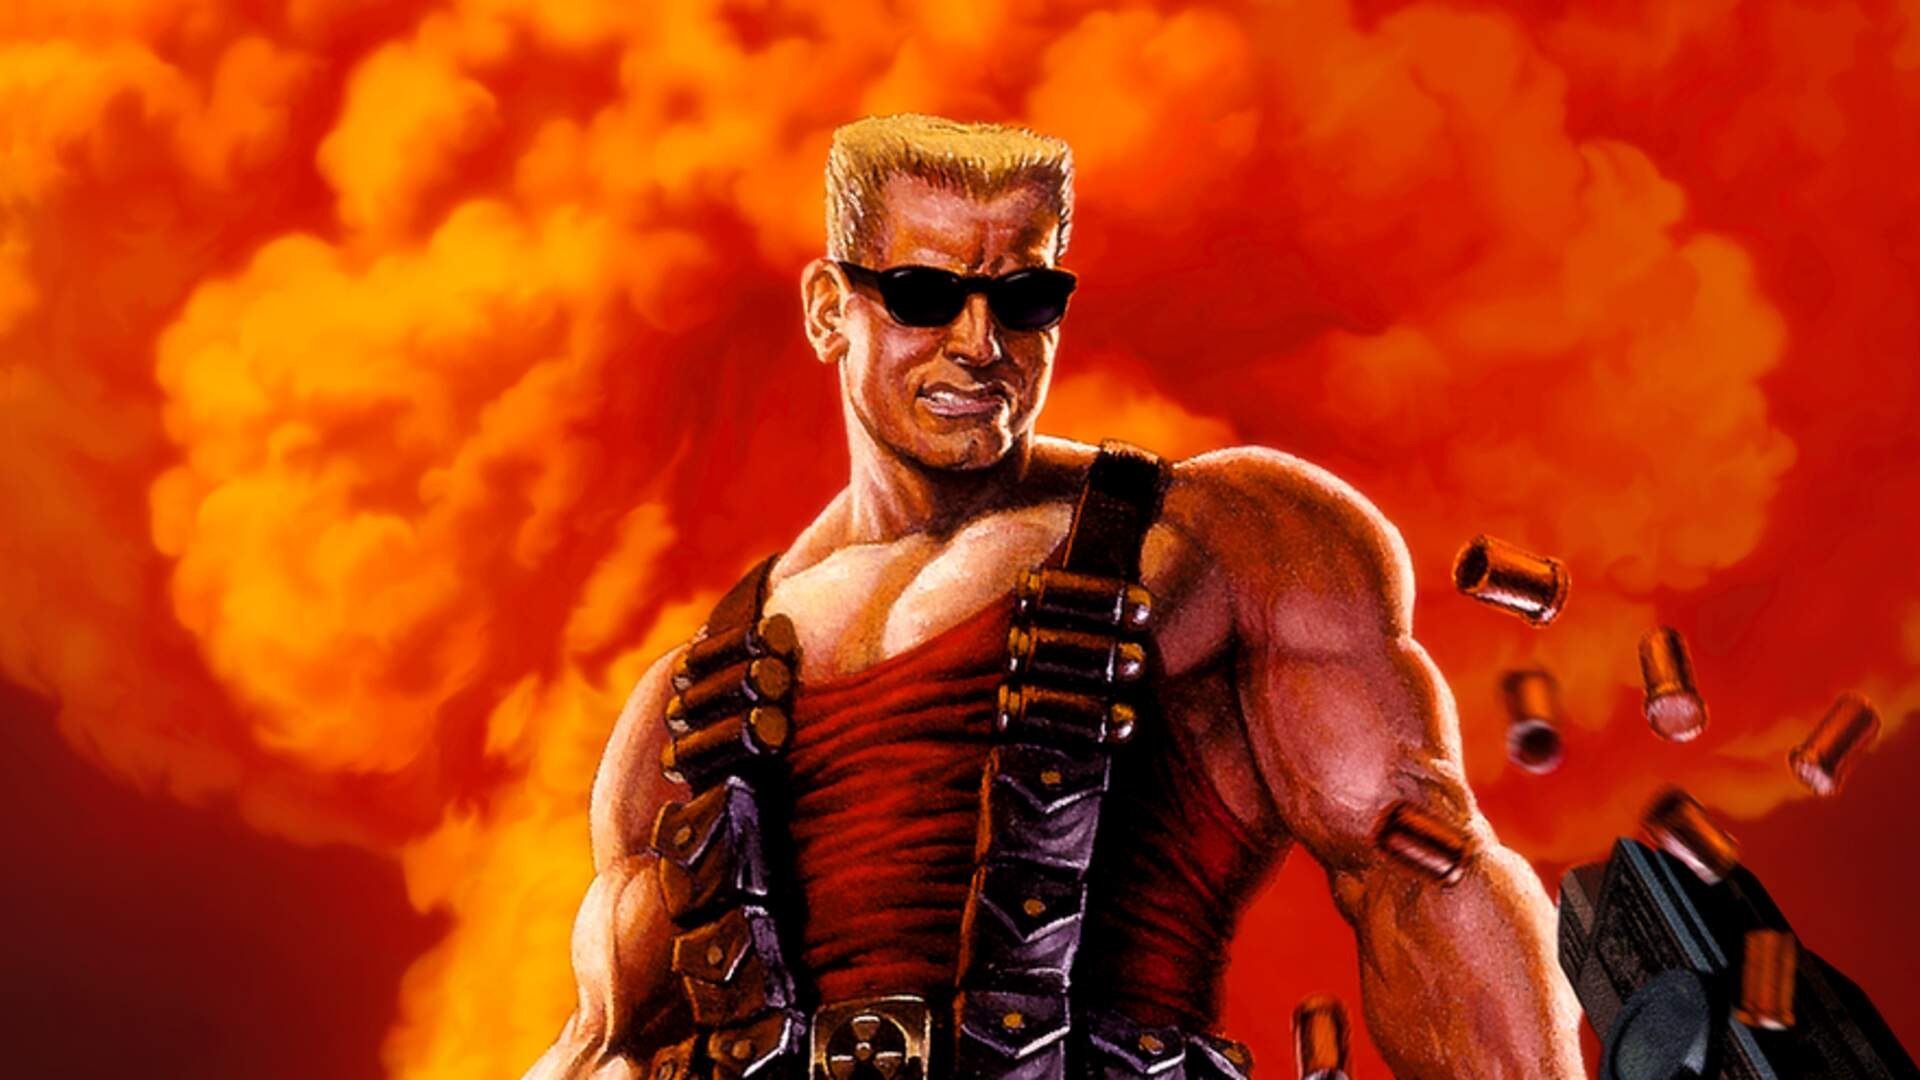 Rise of the Triad Team Working on Duke Nukem Action RPG